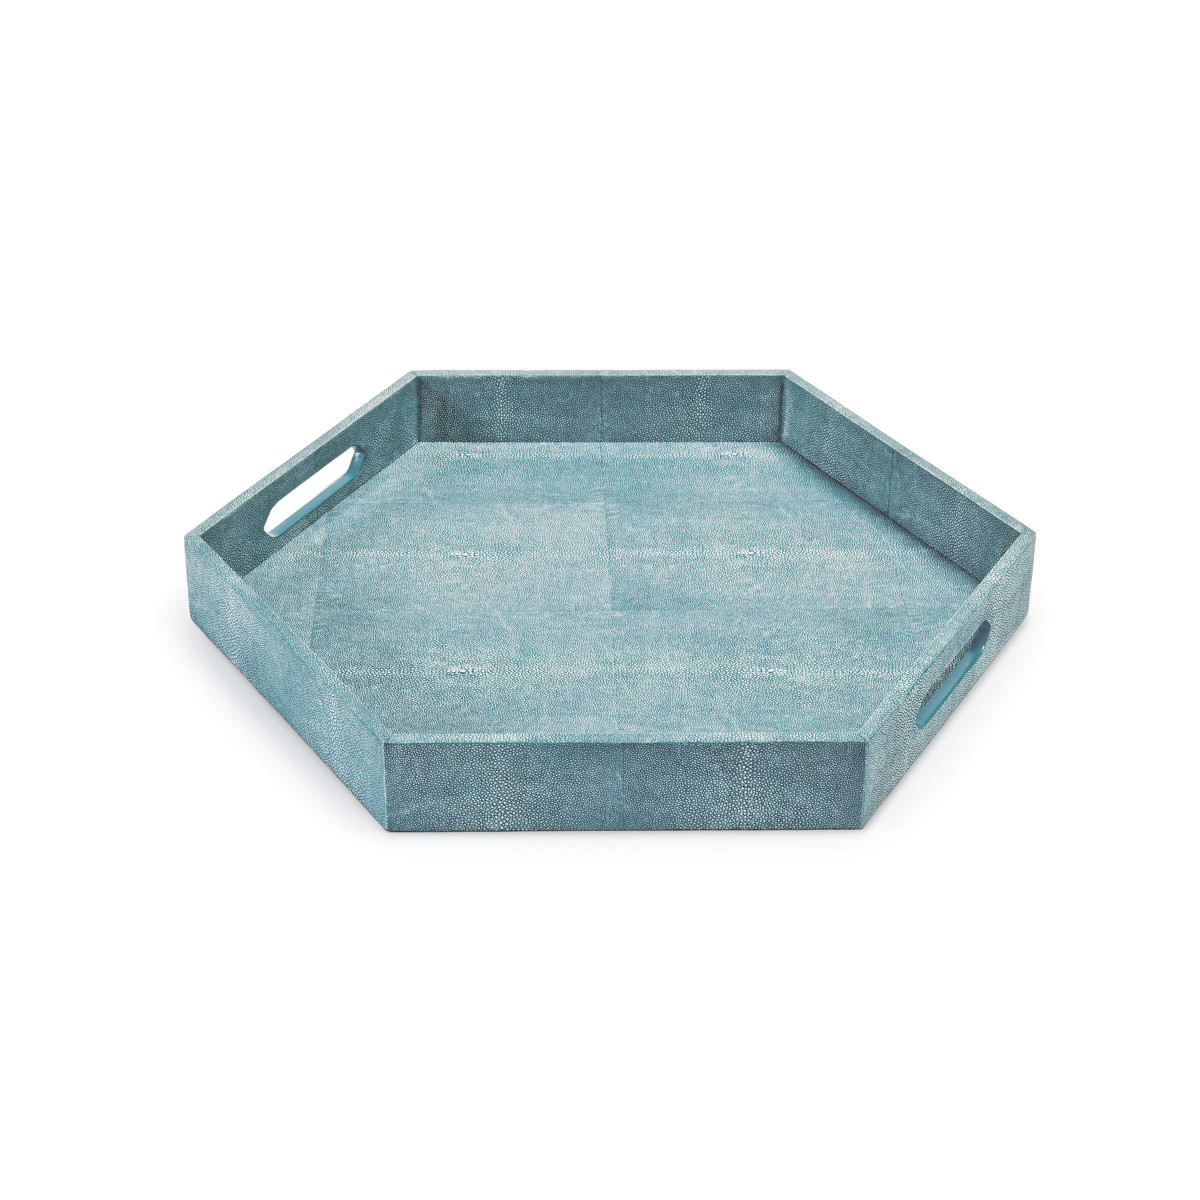 Shagreen Hex Tray (Turquoise)